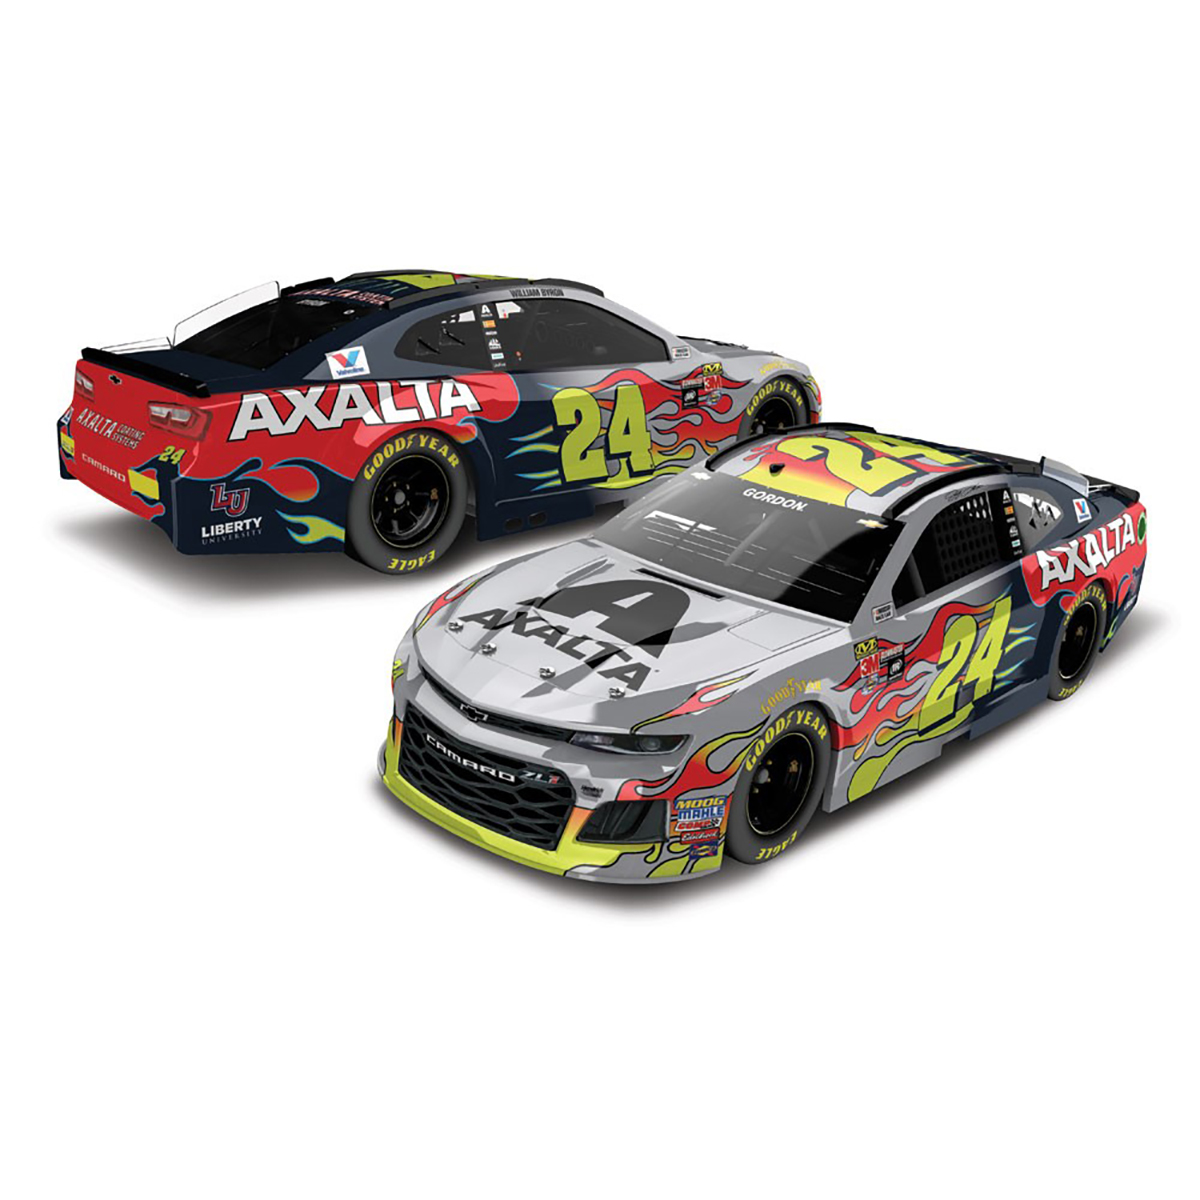 #24Ever Axalta Jeff Gordon/William Byron 1:24 ARC Color Chrome Fantasy Die-Cast